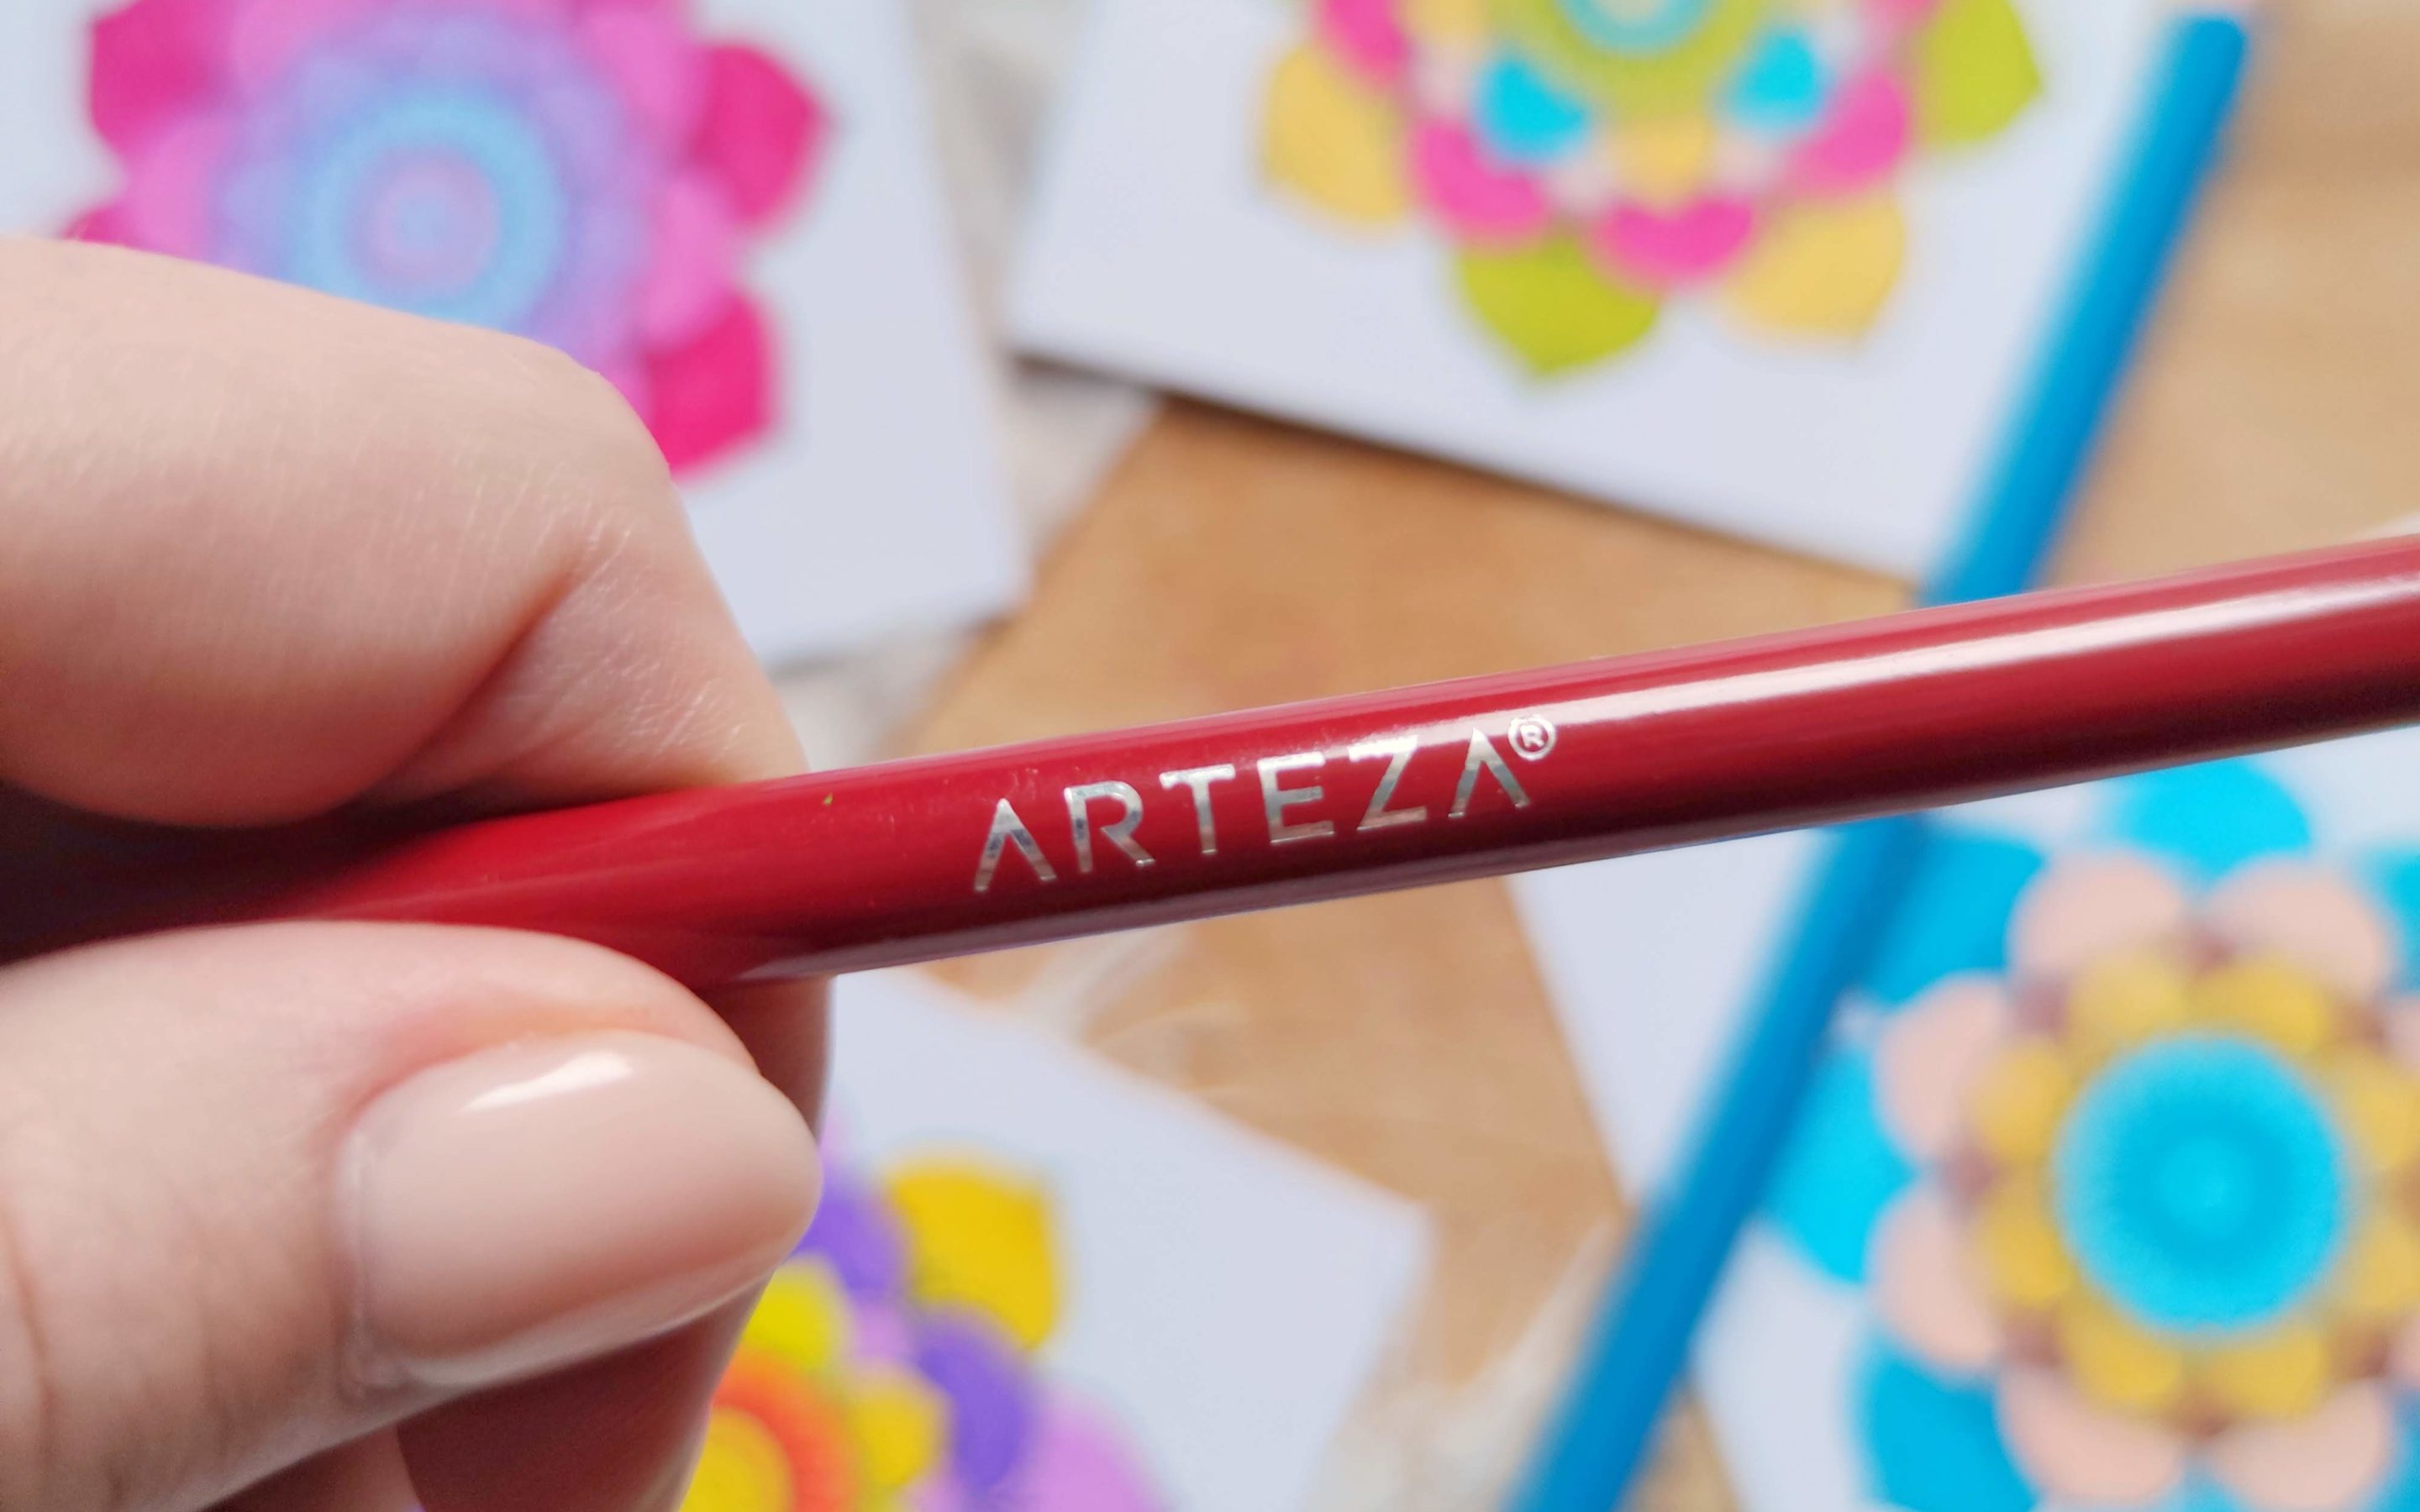 Using Arteza Expert Colored Pencils for Adult Coloring